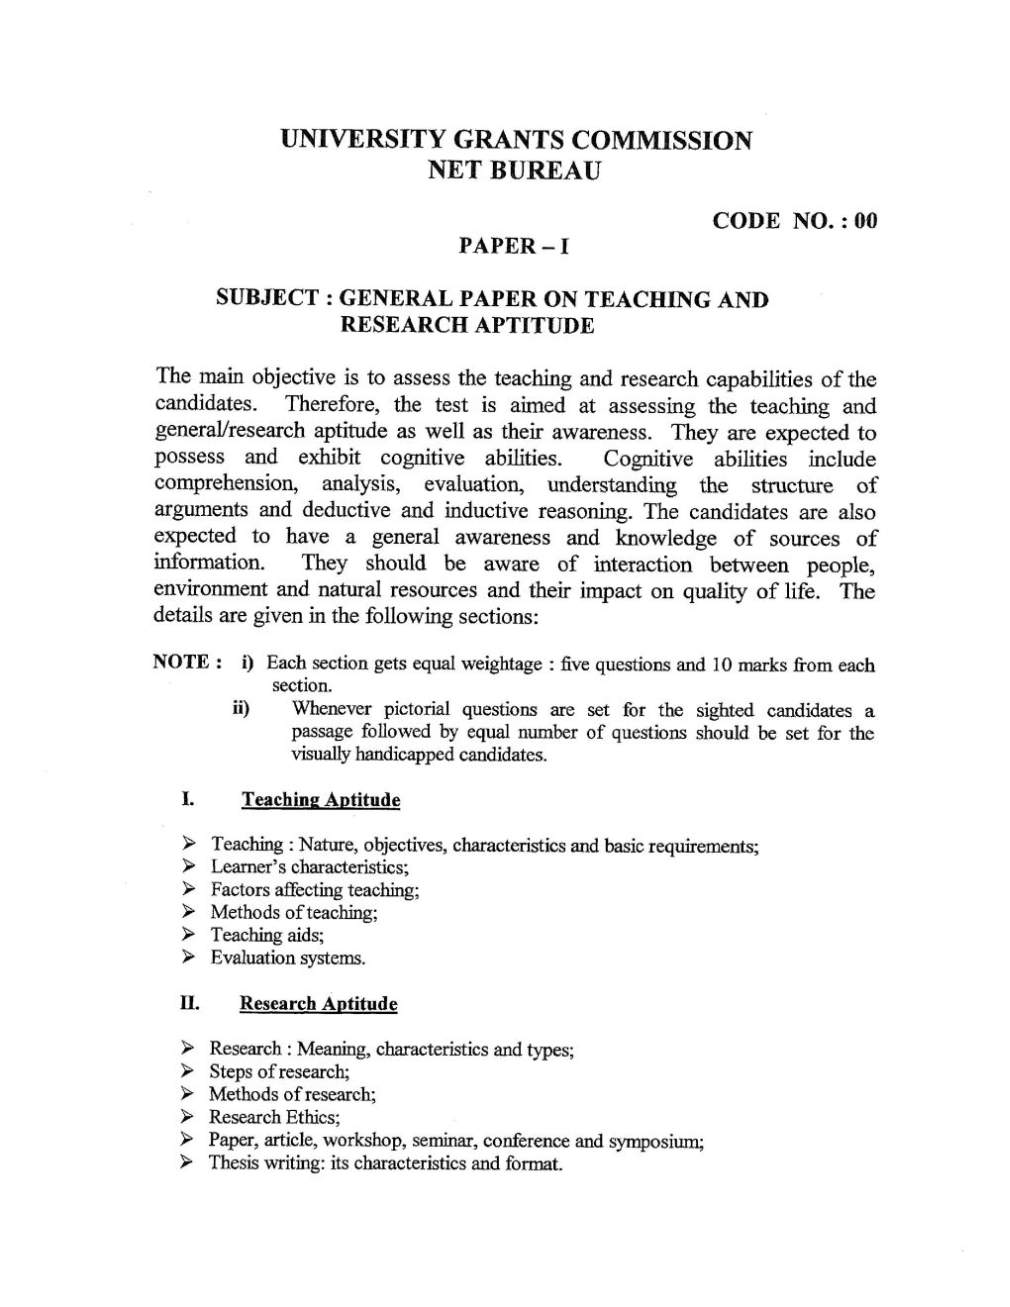 research paper syllabus Research paper (with final bibliography including sources found on the internet) report on interview done on-line with someone you identify as having expertise in the subject of your research the following is a group project to be completed by teams of students with same major:.